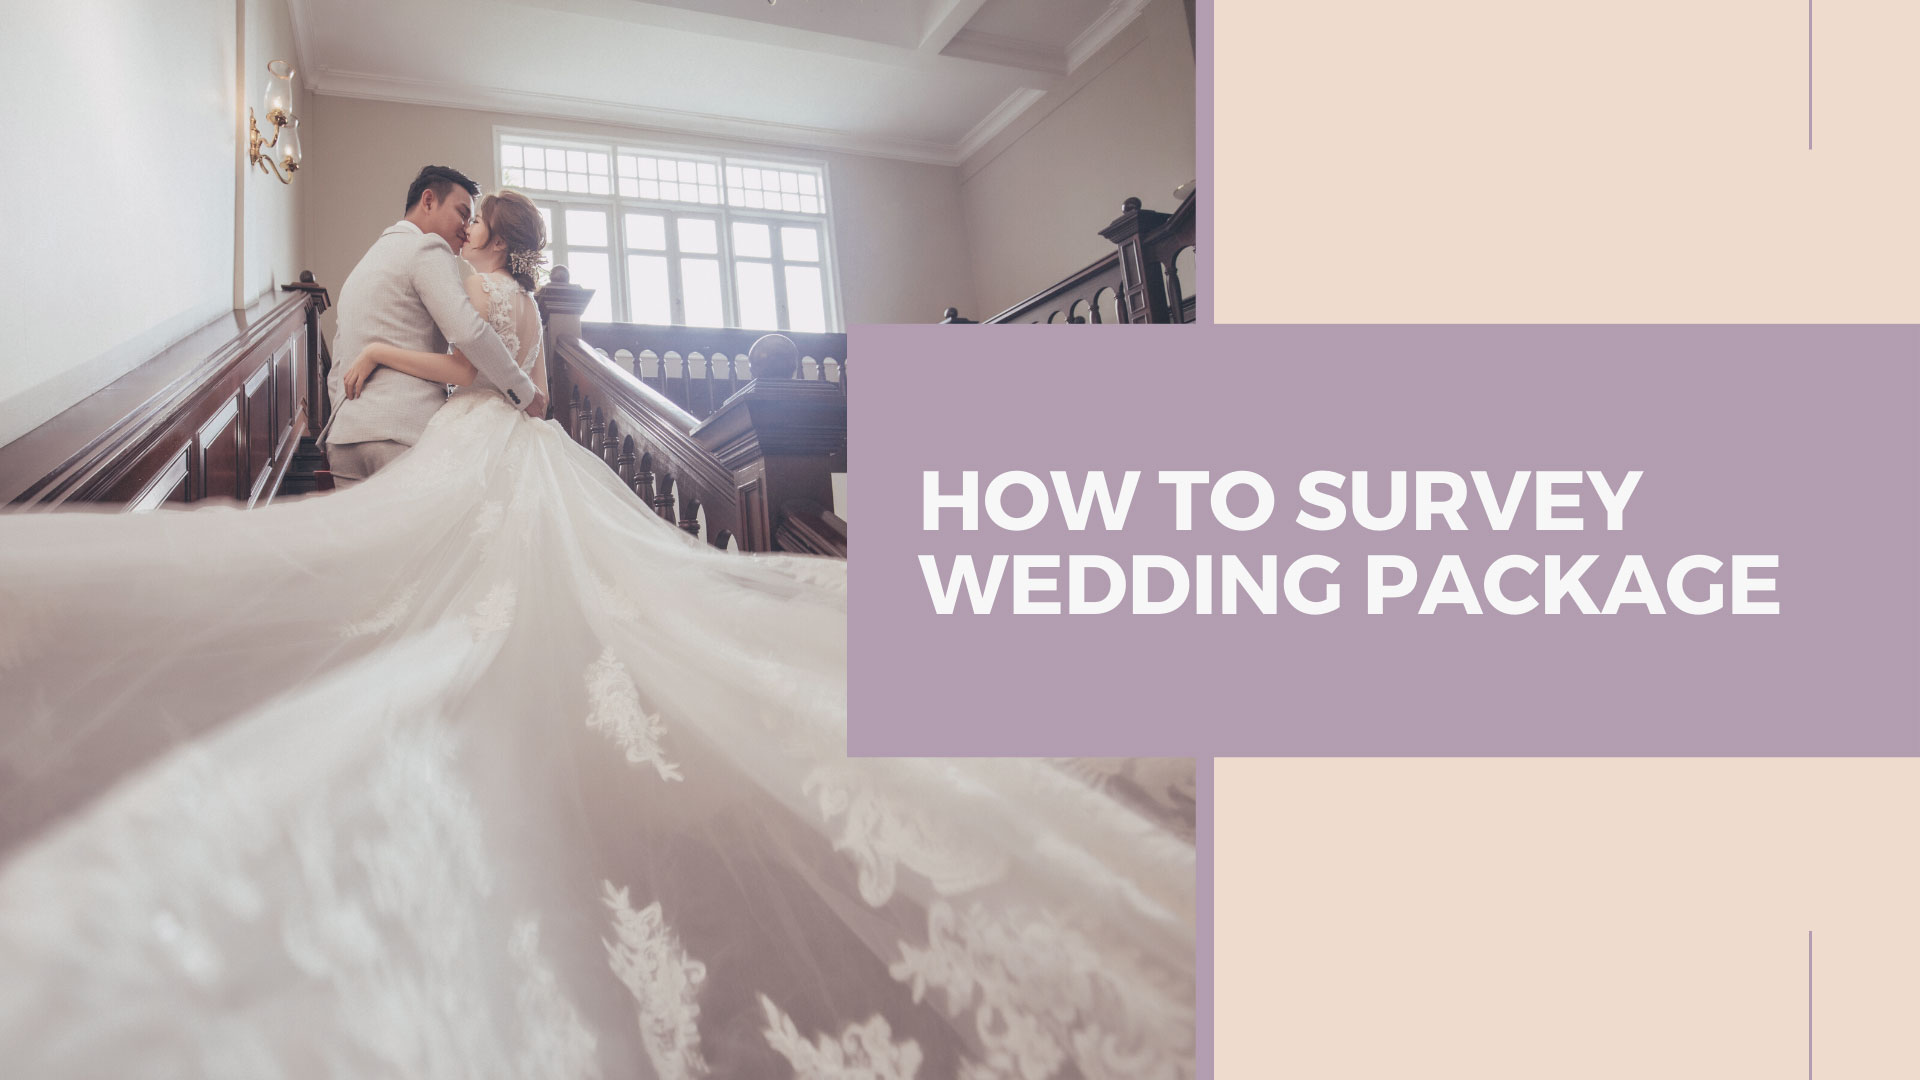 How To Survey Wedding Package